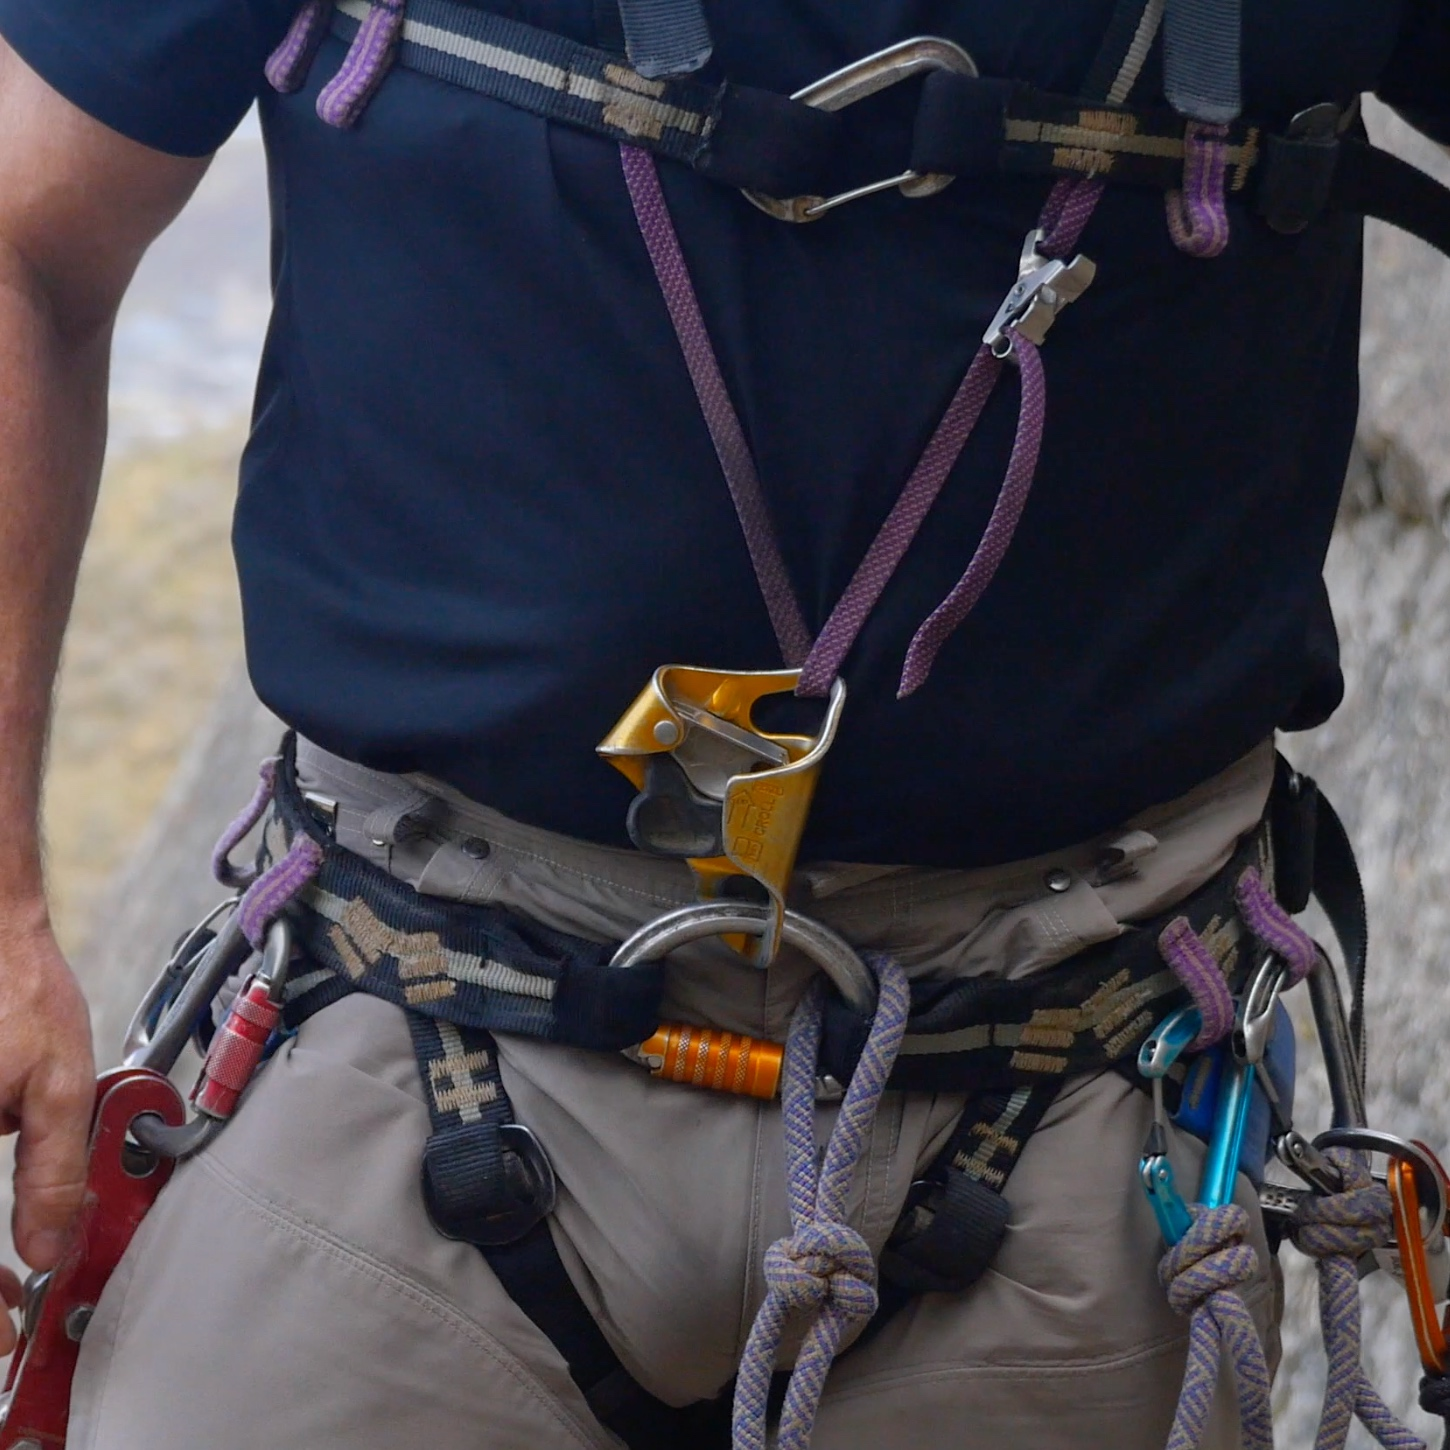 Frog system - The Frog ascending system was developed in France and is the standard in most of the world. It is light, fast at mid-rope maneuvers, and easy to wear while caving. It is not as efficient as ropewalking systems.